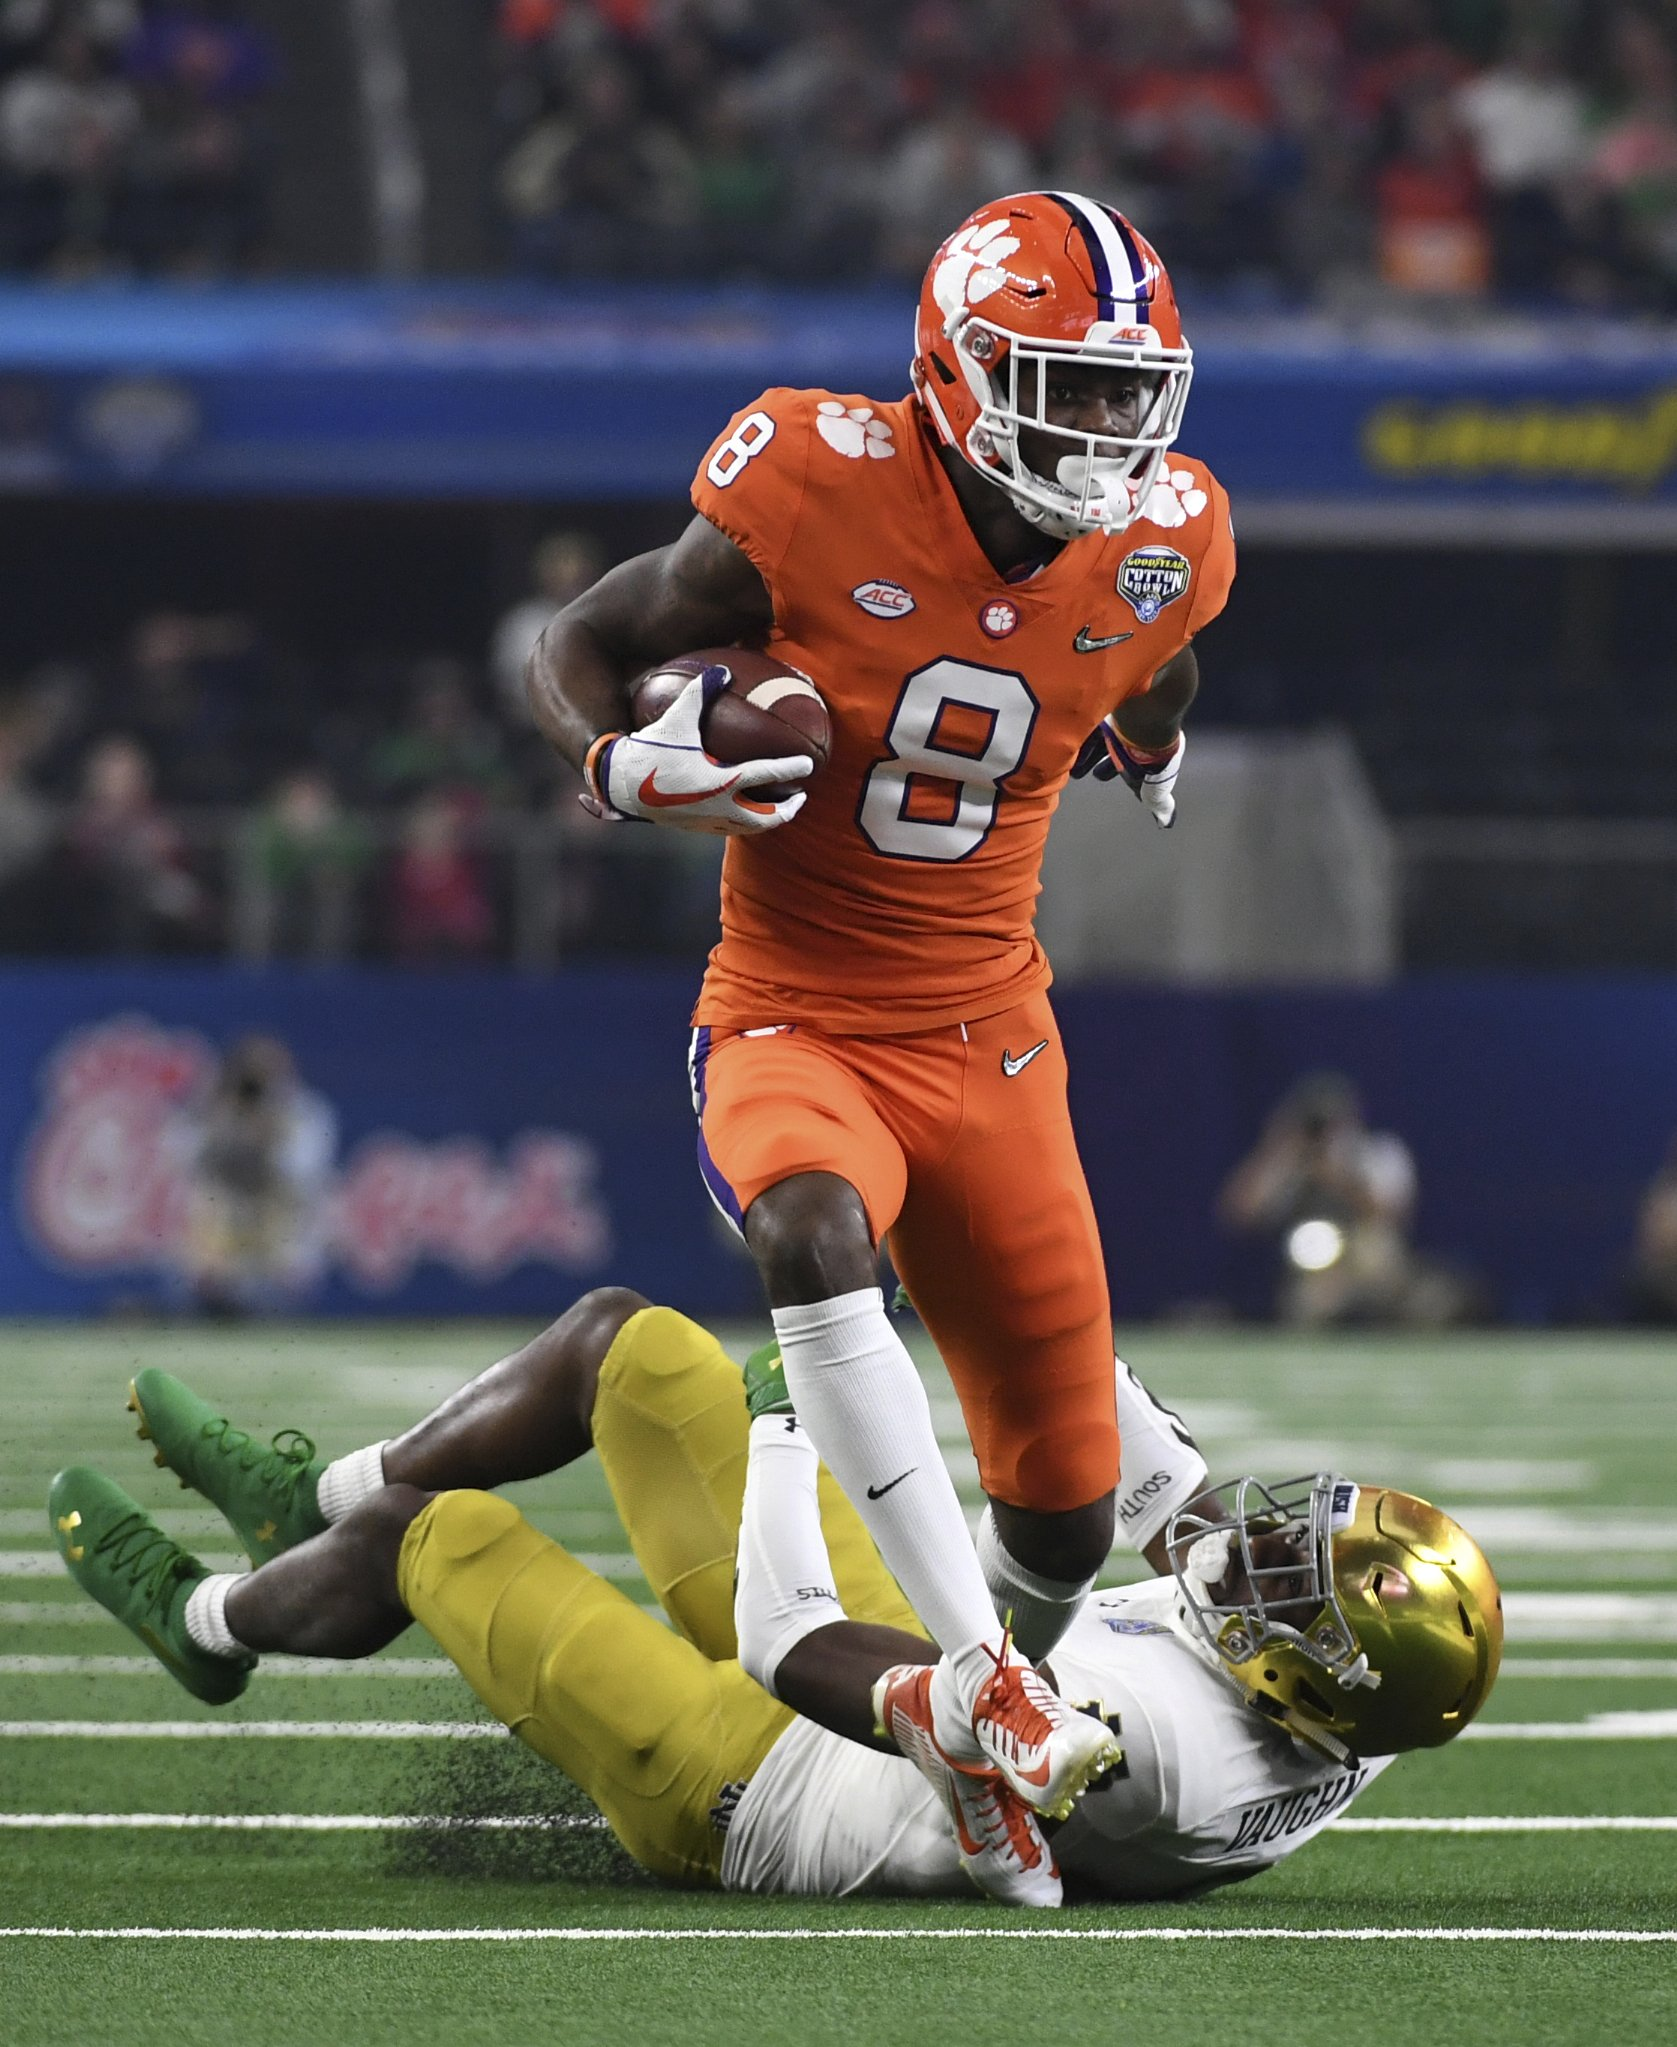 The Latest: Clemson takes 23-3 halftime lead over Notre Dame